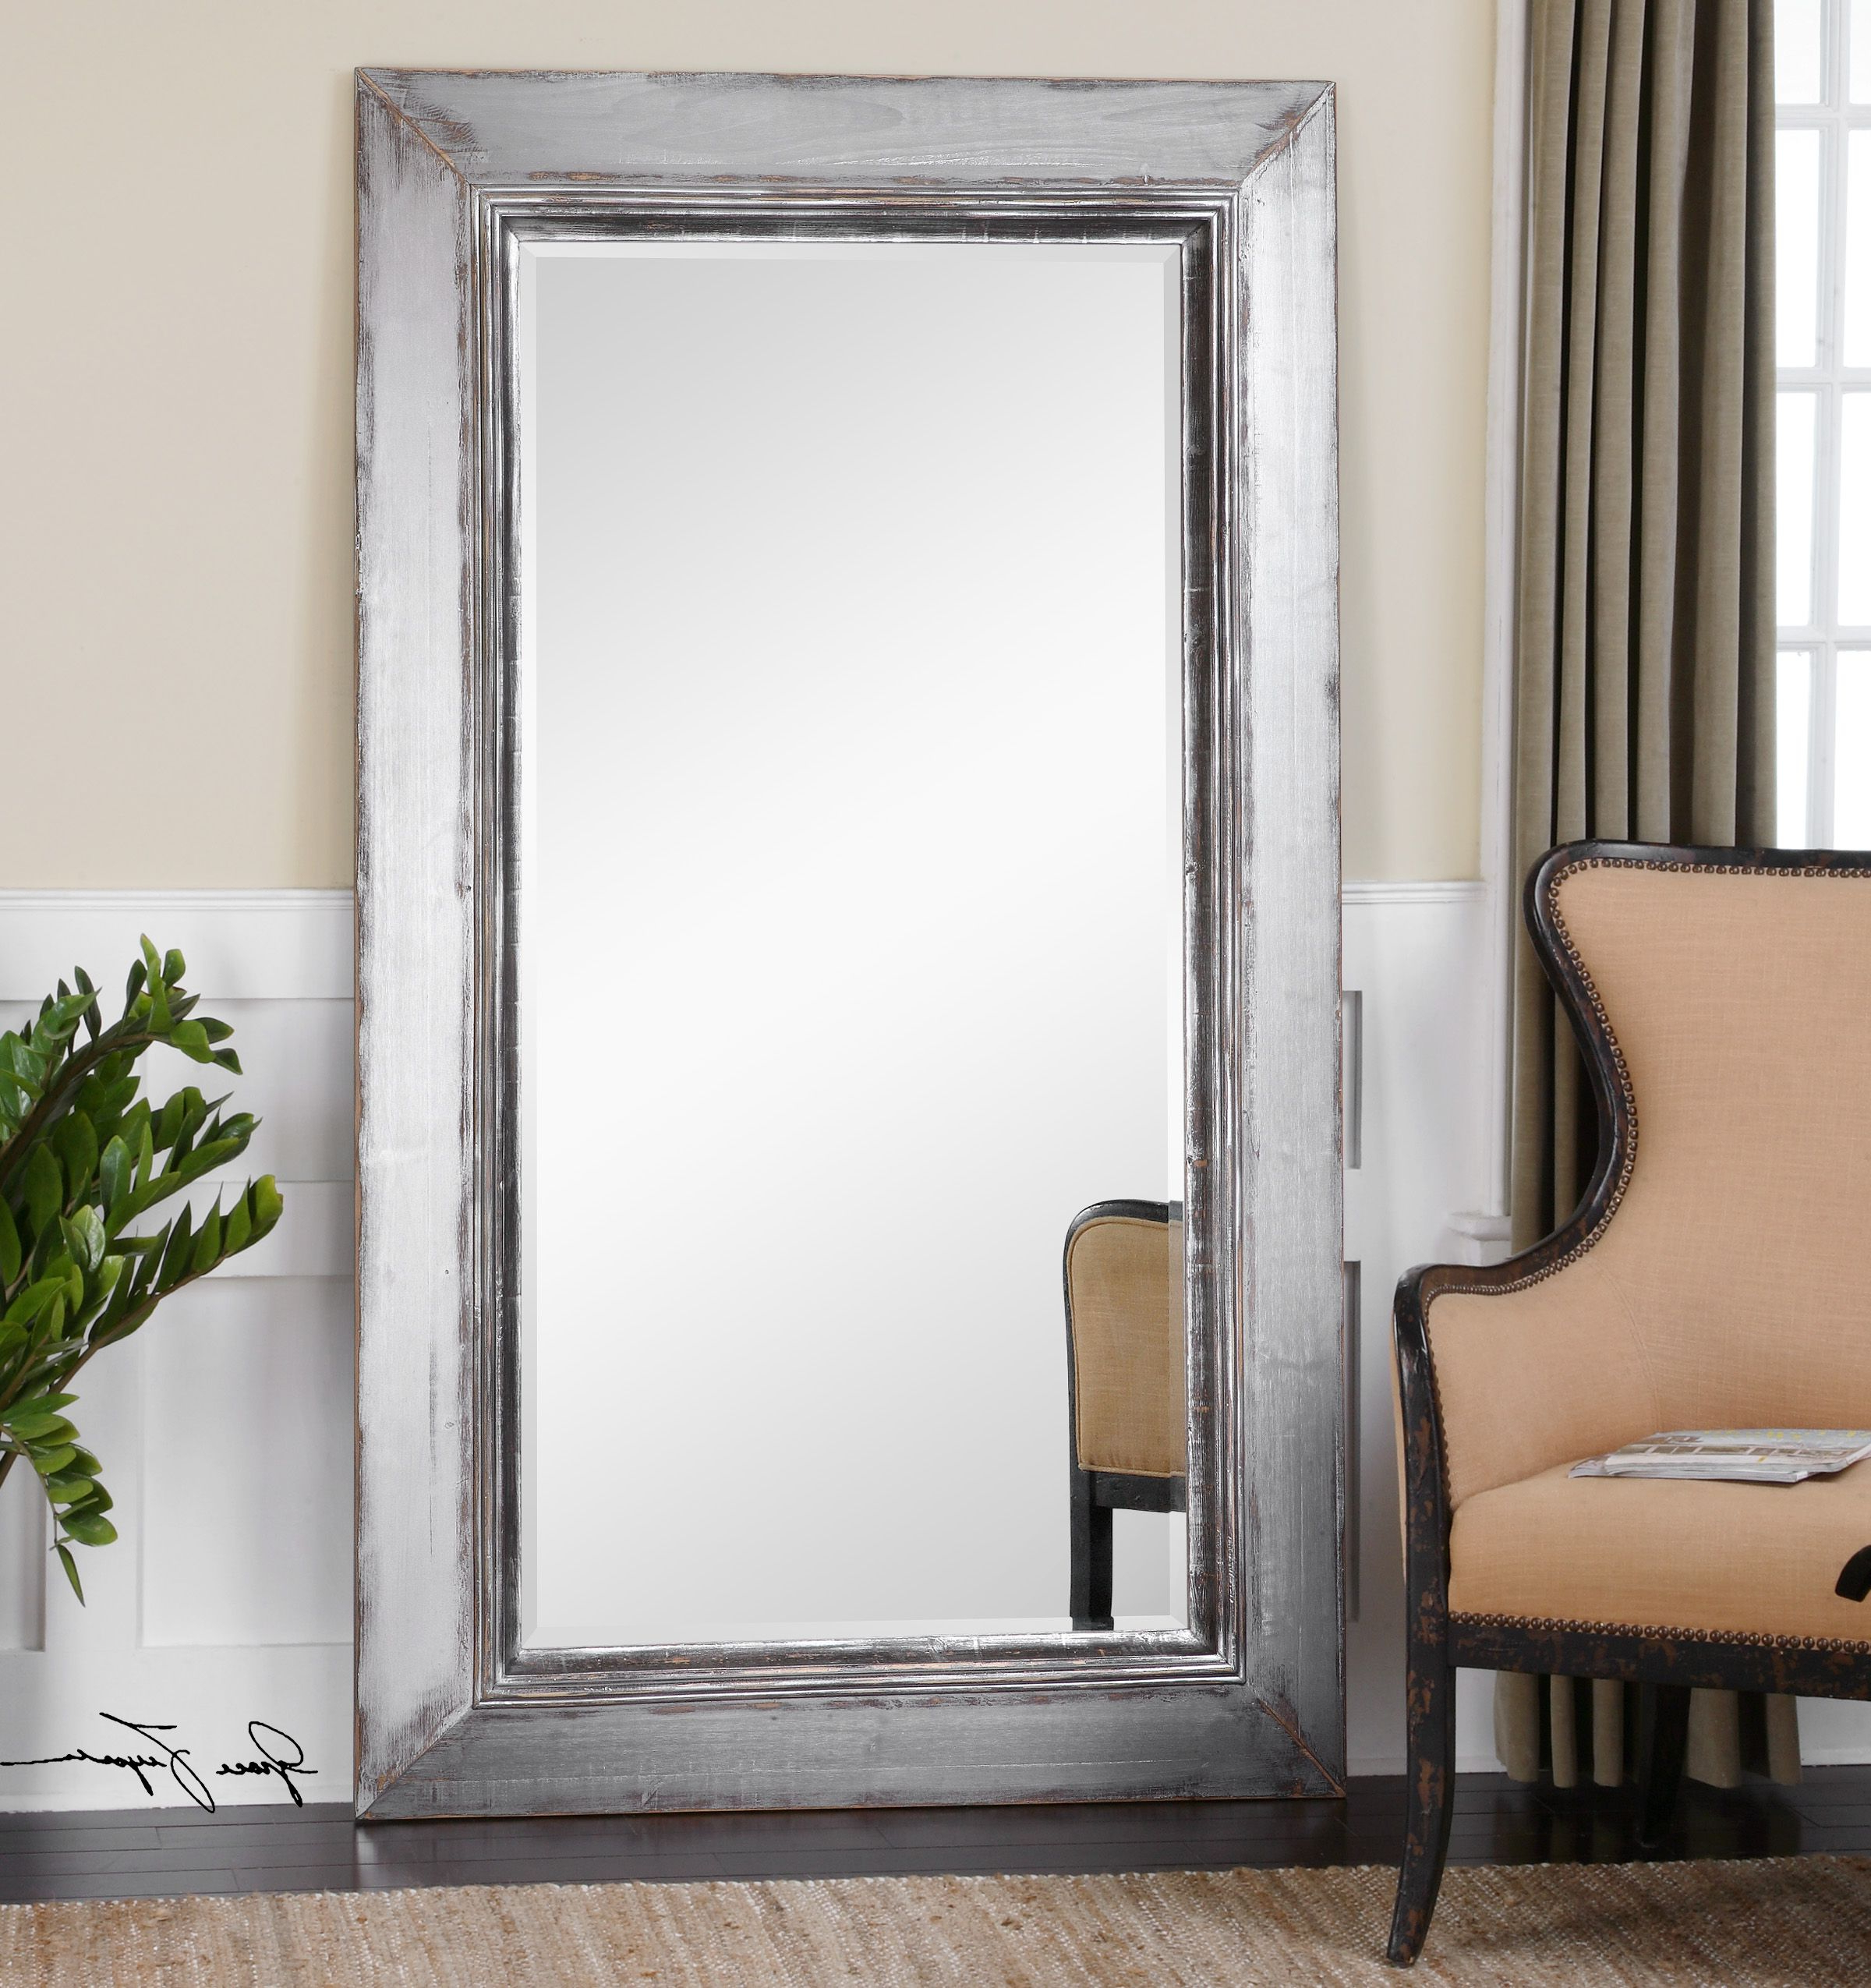 How To Secure A Leaning Mirror Within Popular Leaning Wall Mirrors (View 14 of 20)